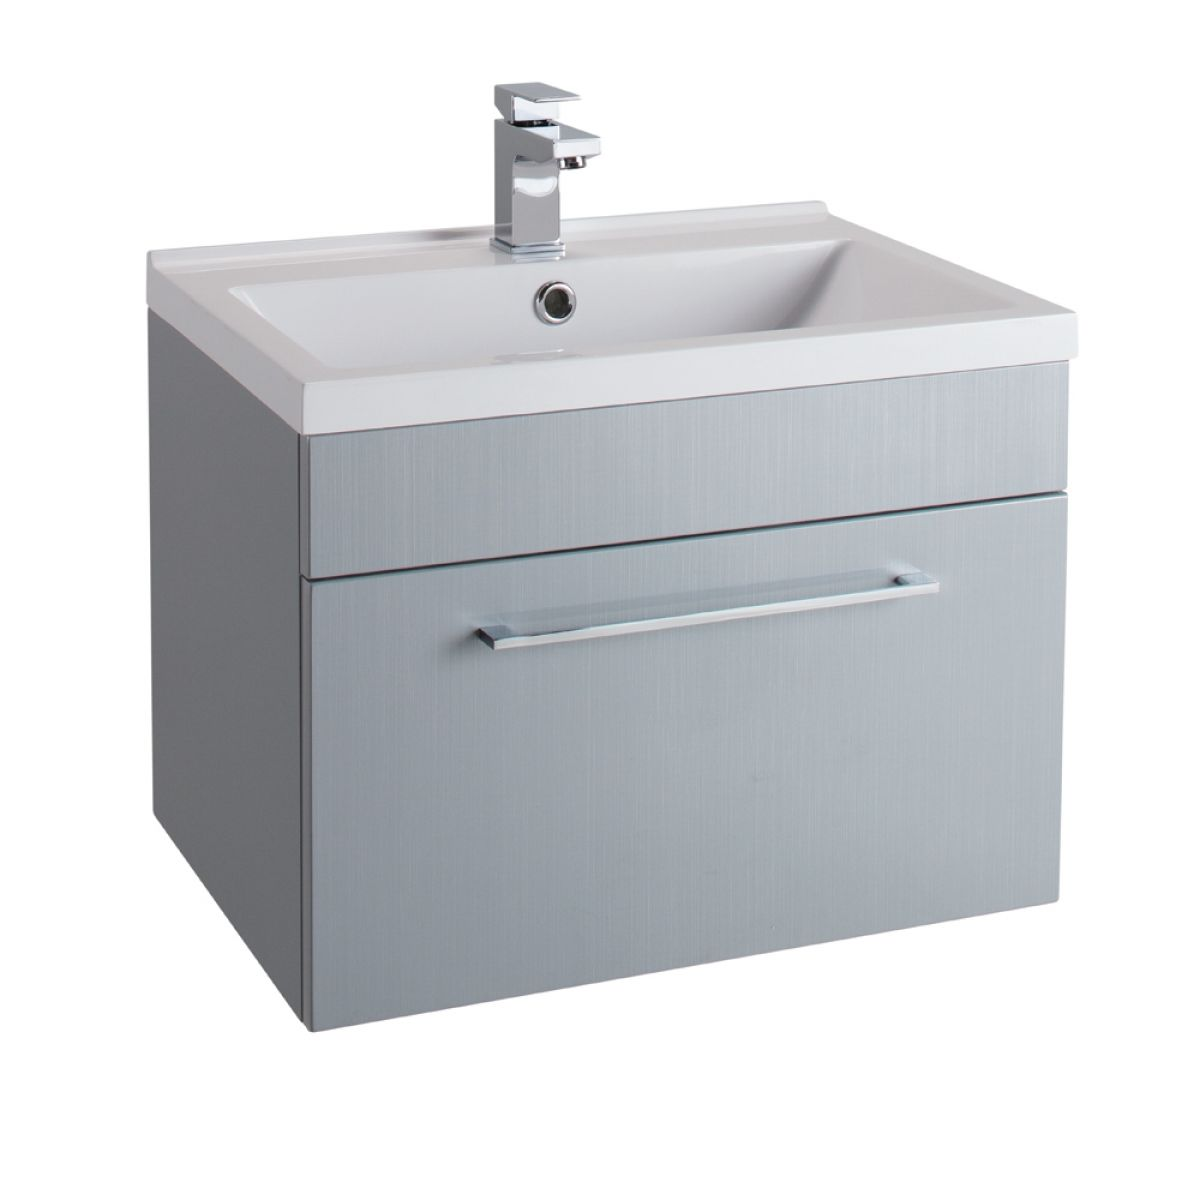 Cassellie Idon Grey Wall Hung Vanity Unit with Basin 600mm